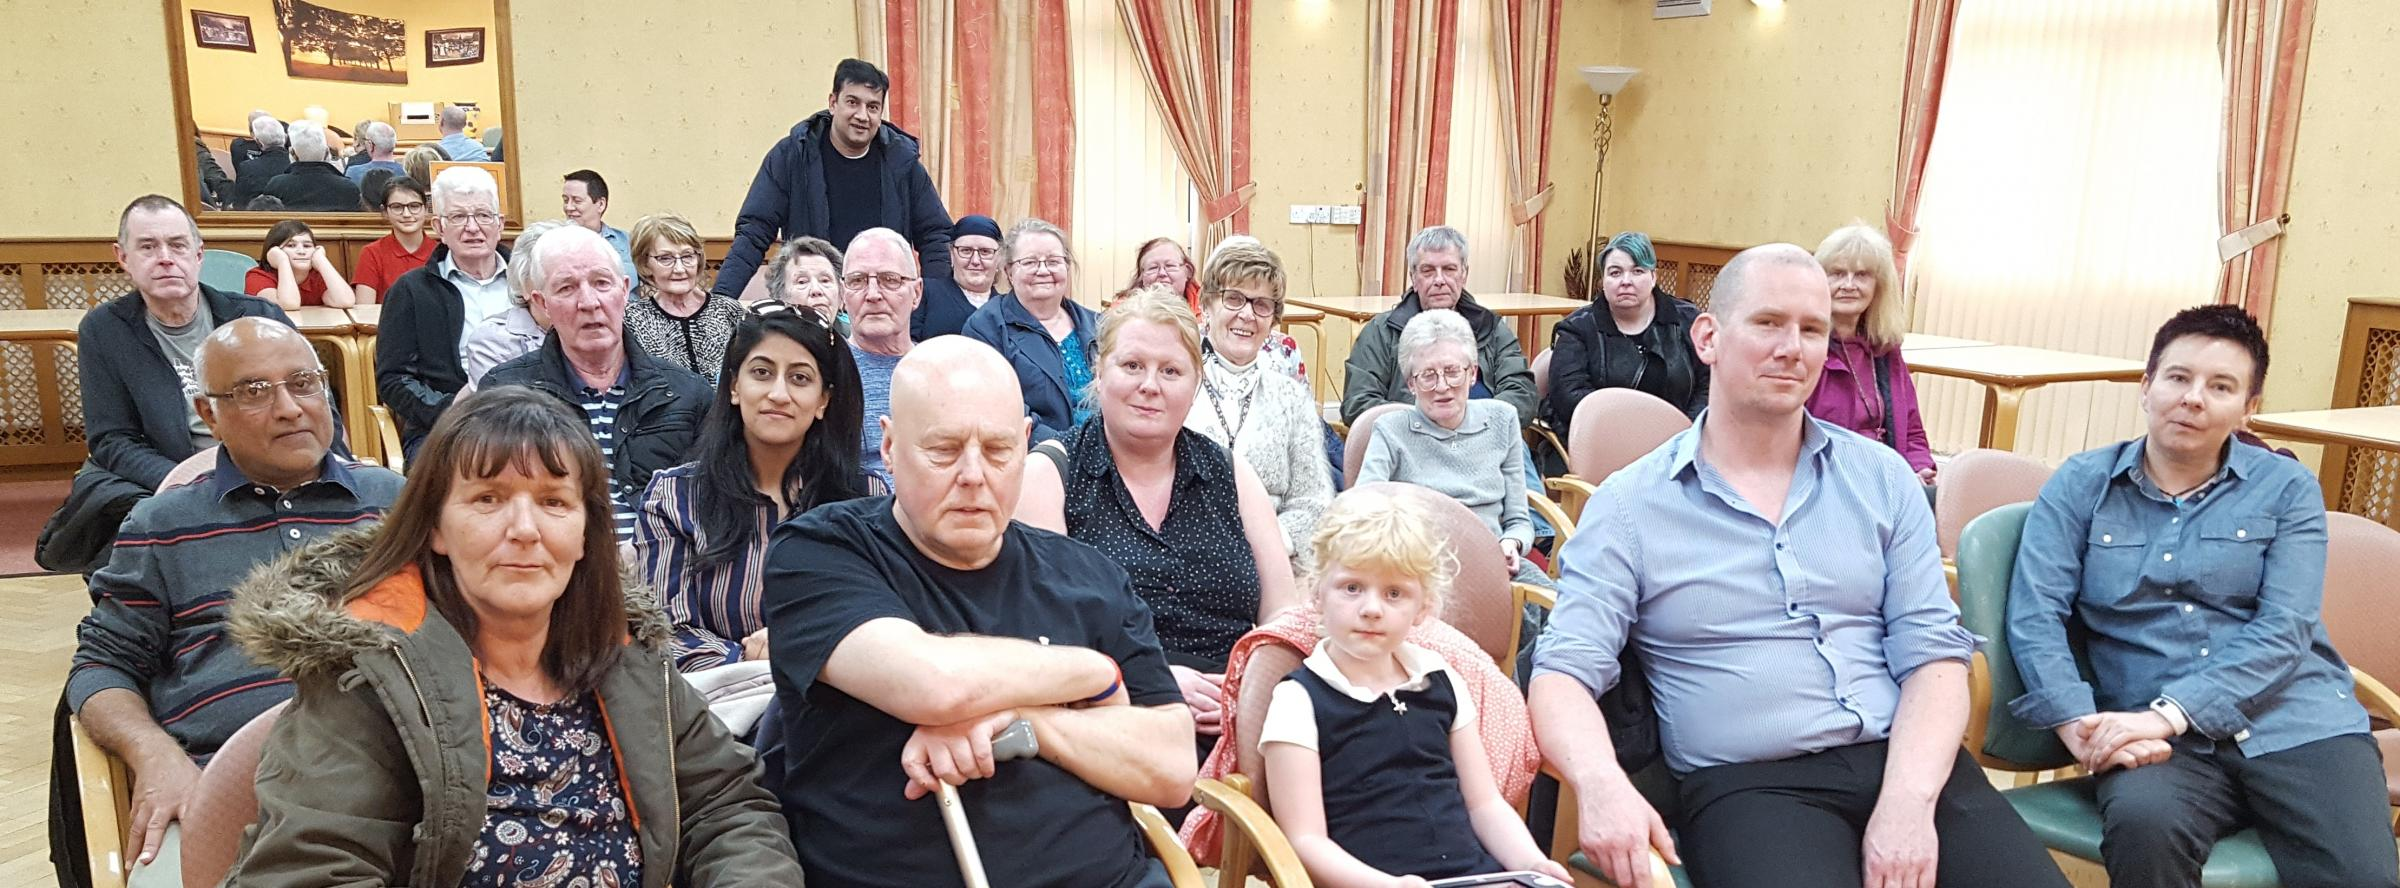 MEETING: Several residents came together at Hulton Lane Community Centre to form an action plan